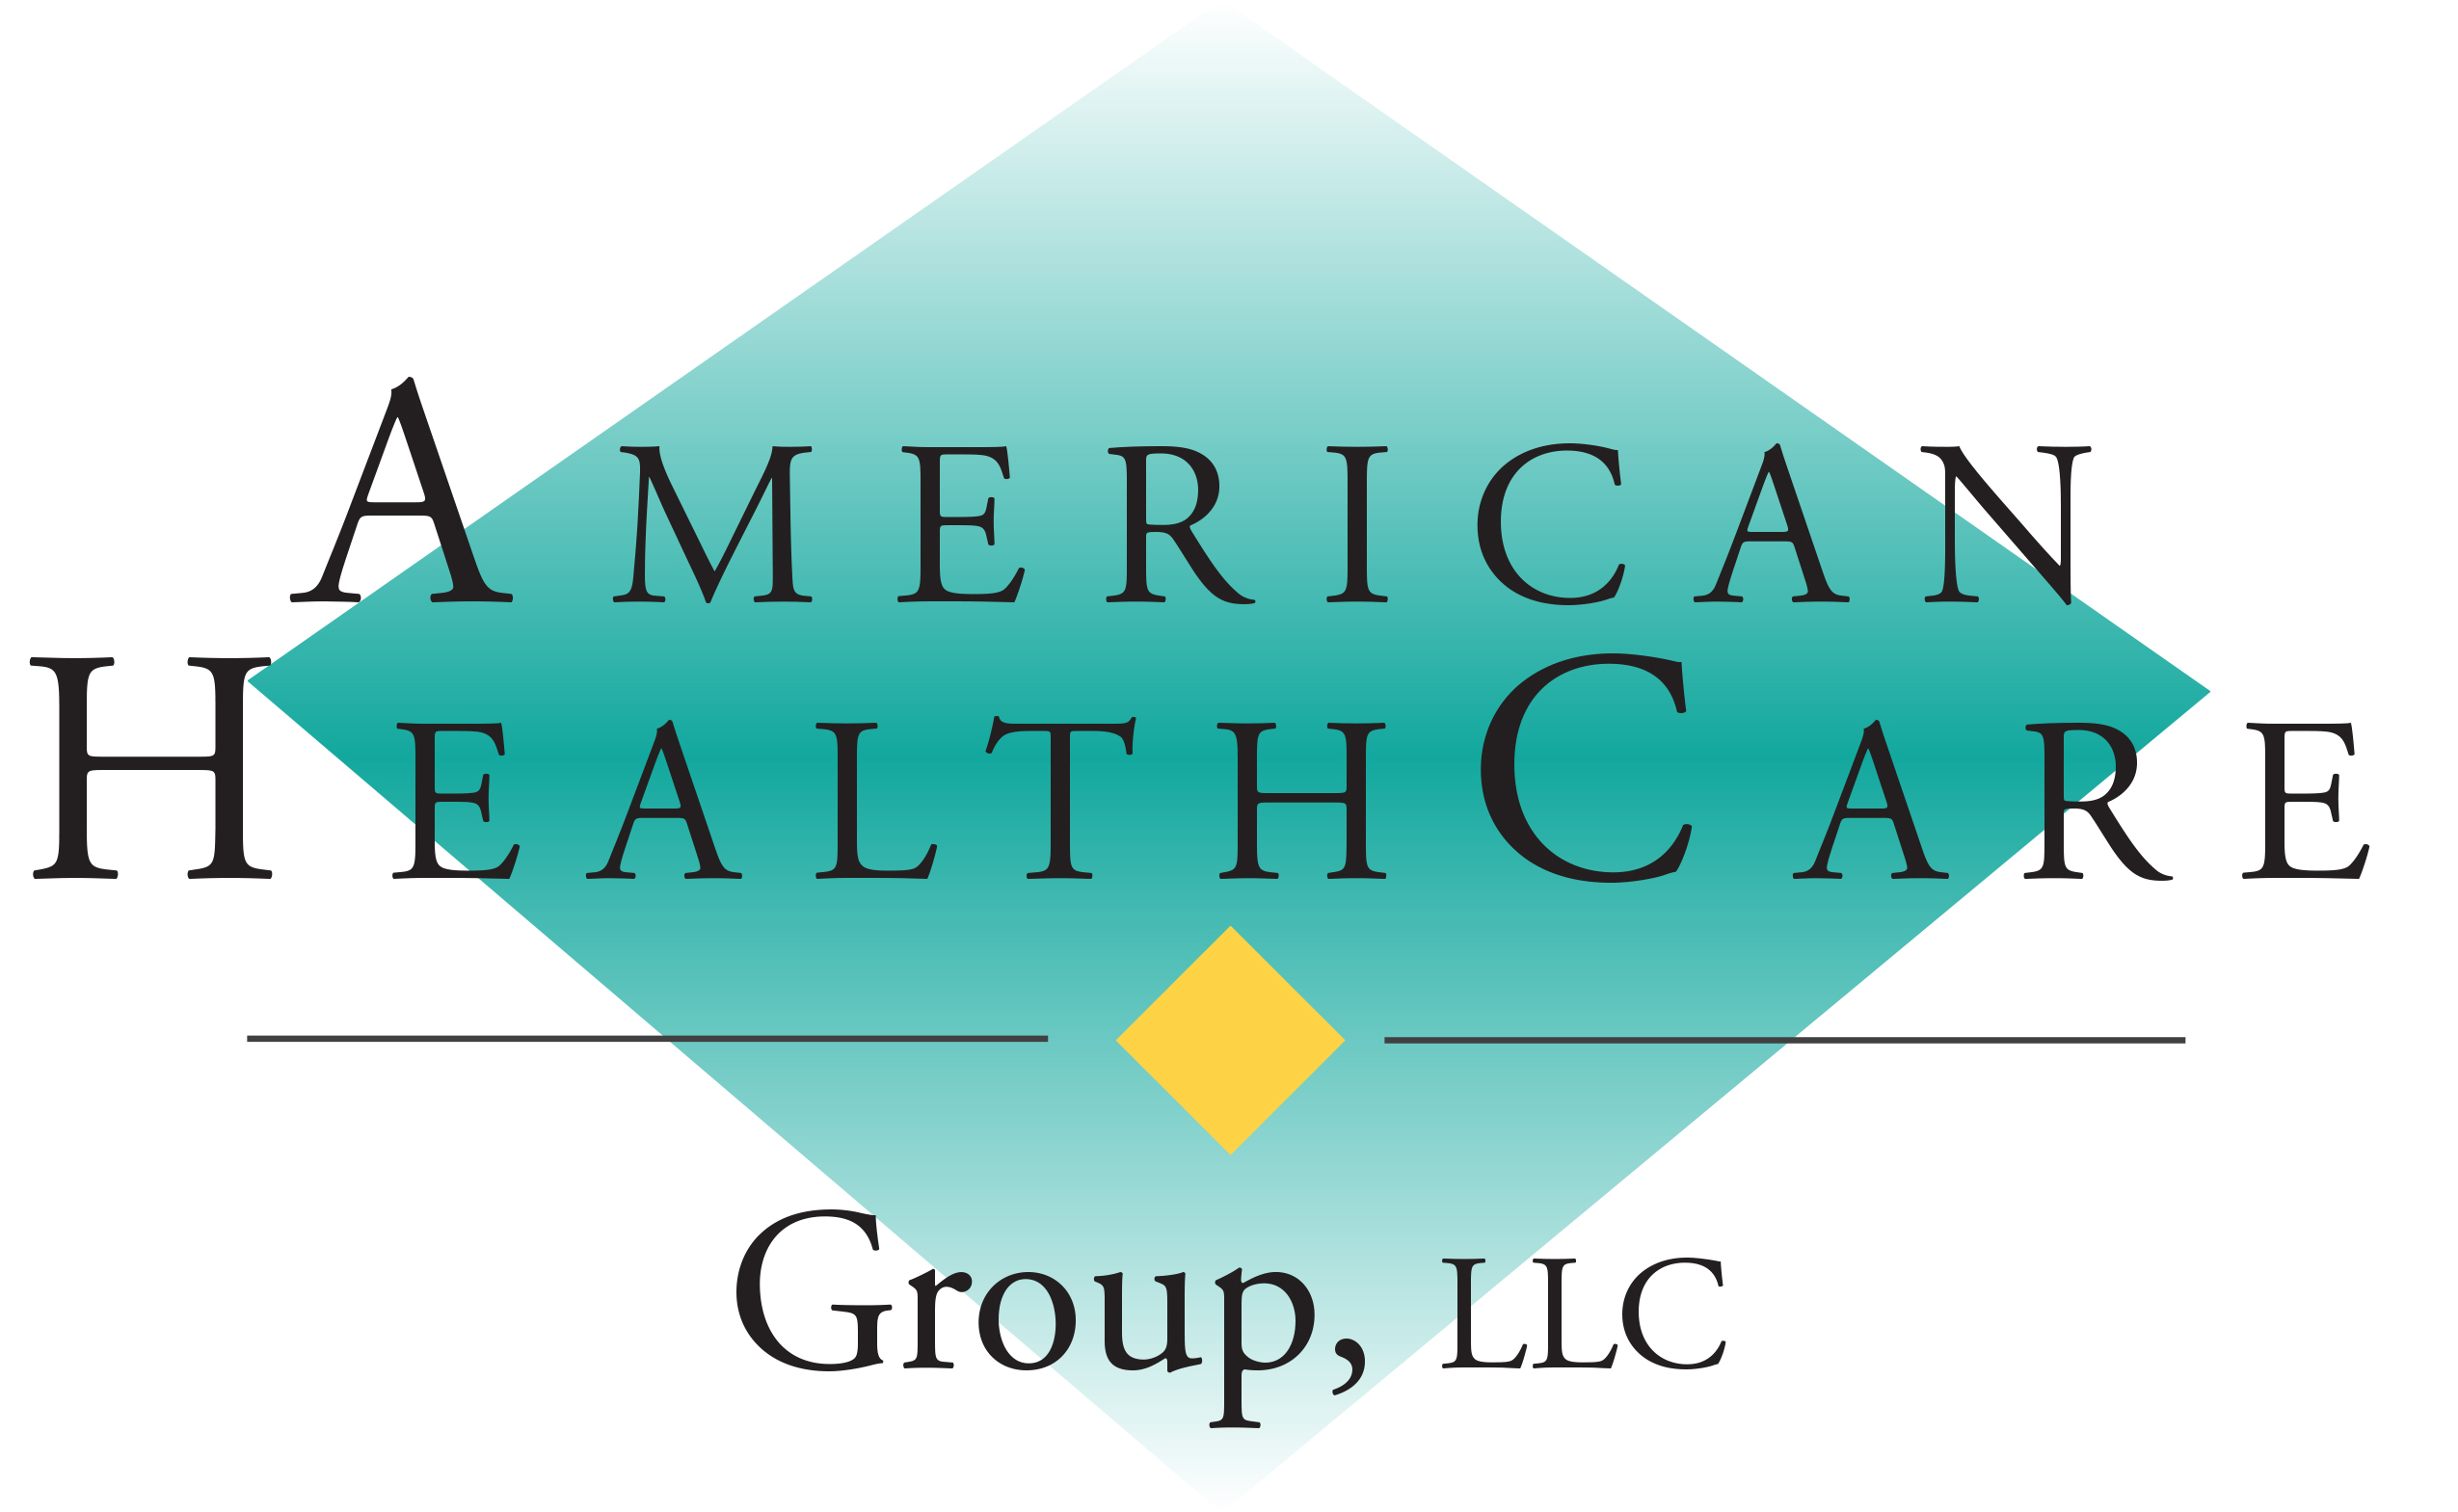 American HealthCare Group, Inc.